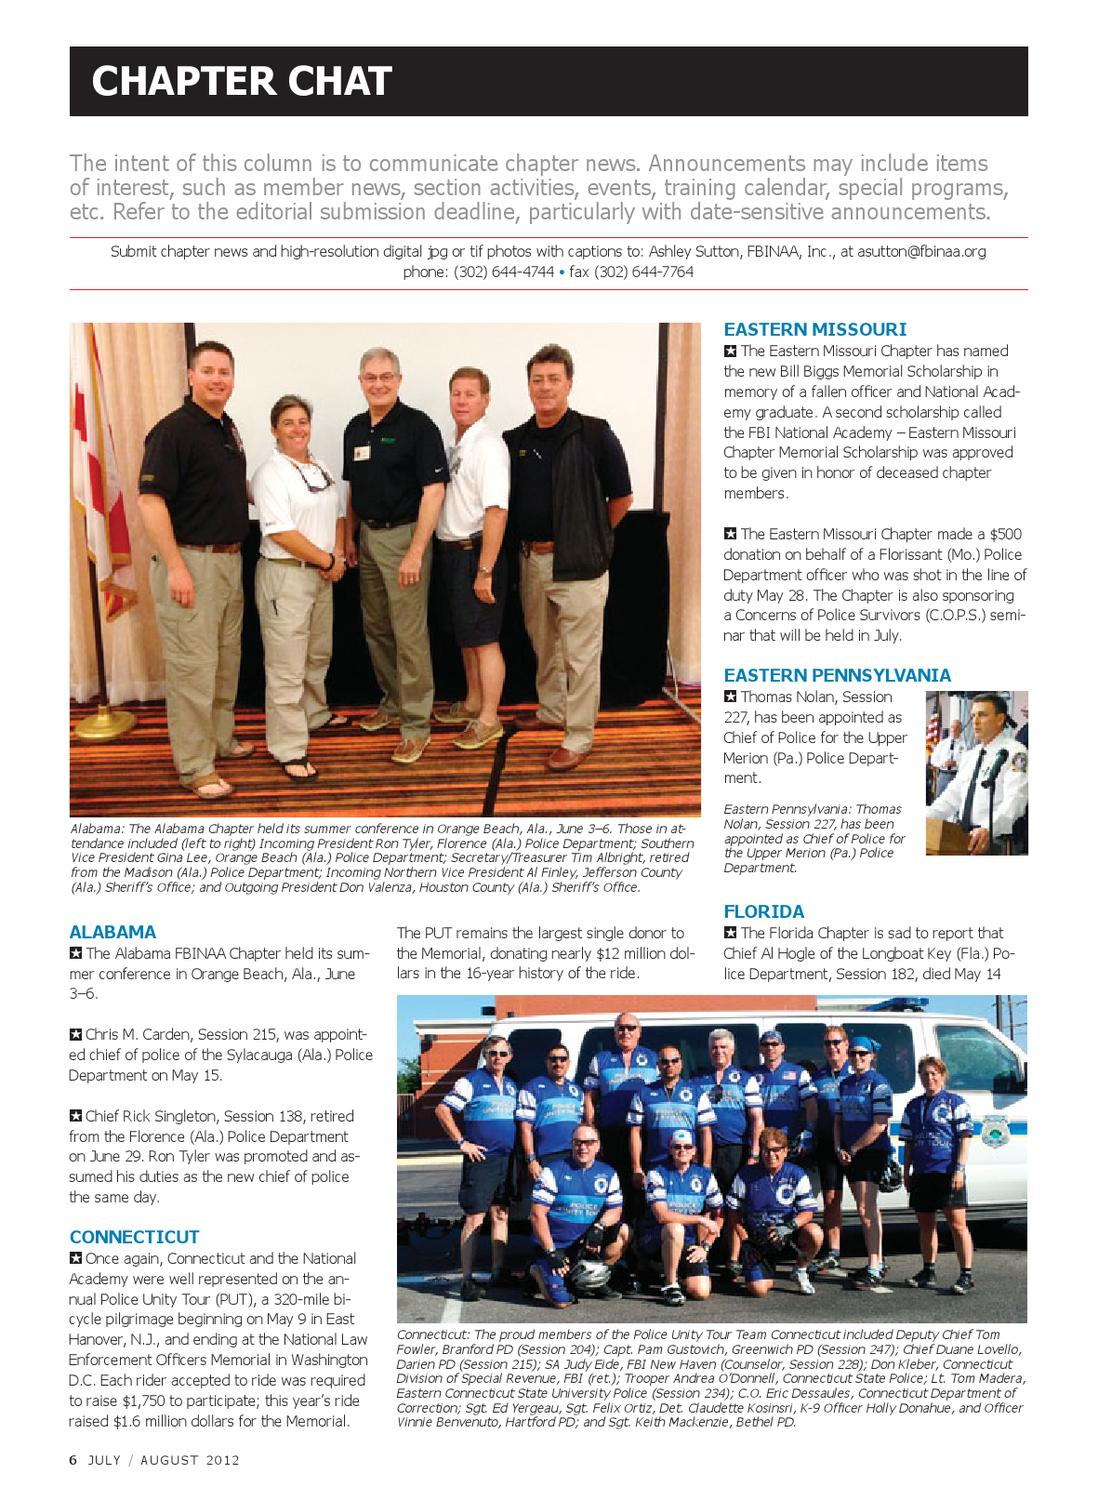 FBI National Academy Associate July/August 2012 by Kelly Bracken - issuu